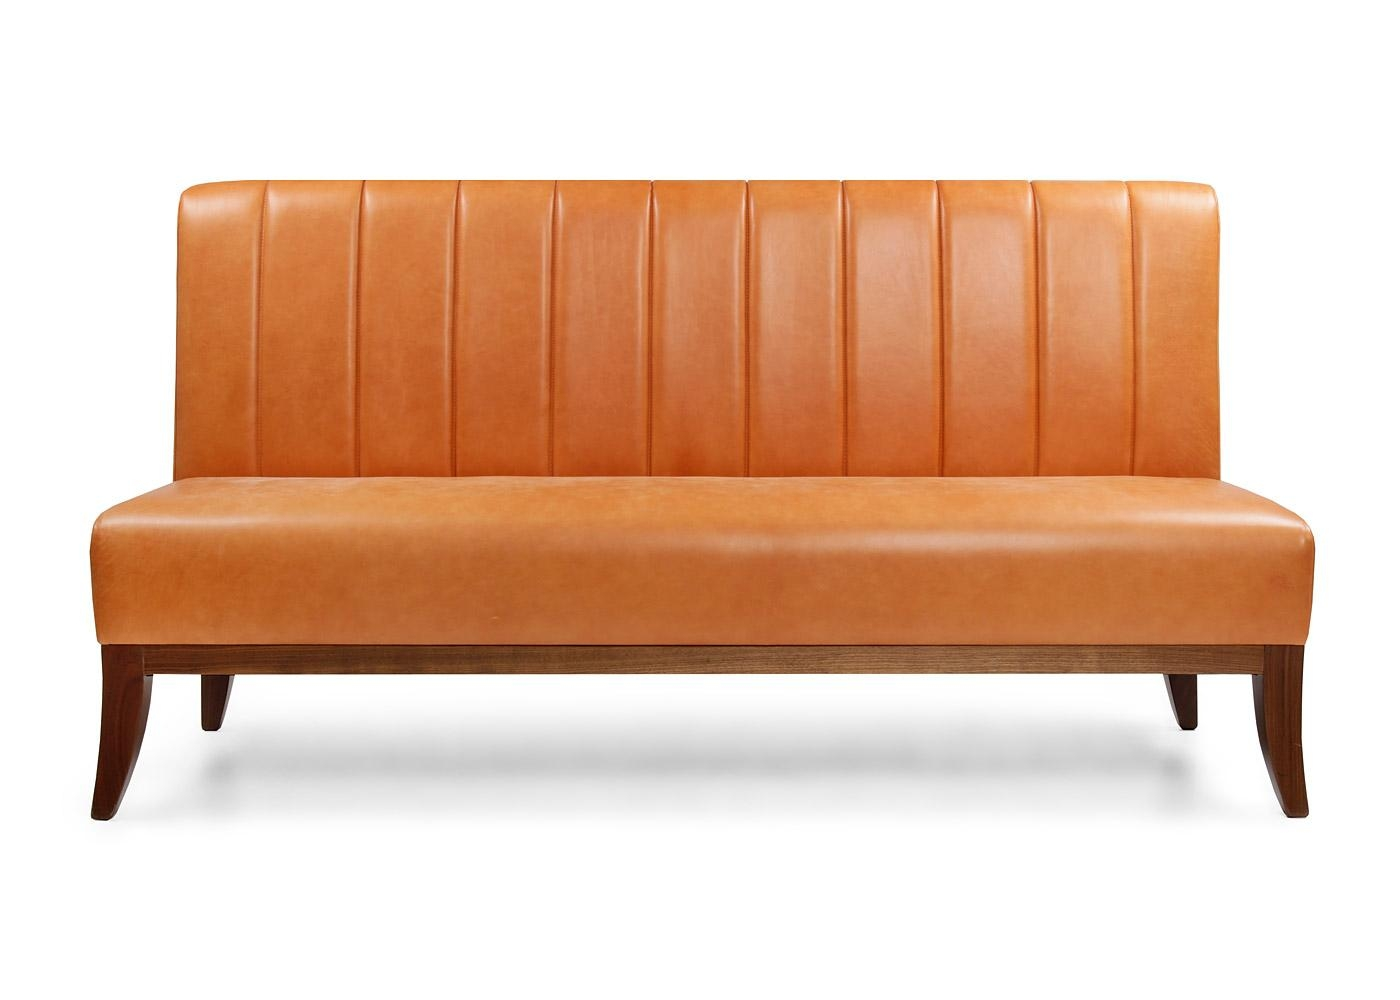 Banquette Seating | Chapel Street Furniture | Custom Furniture Within Banquette Sofas (Image 6 of 20)